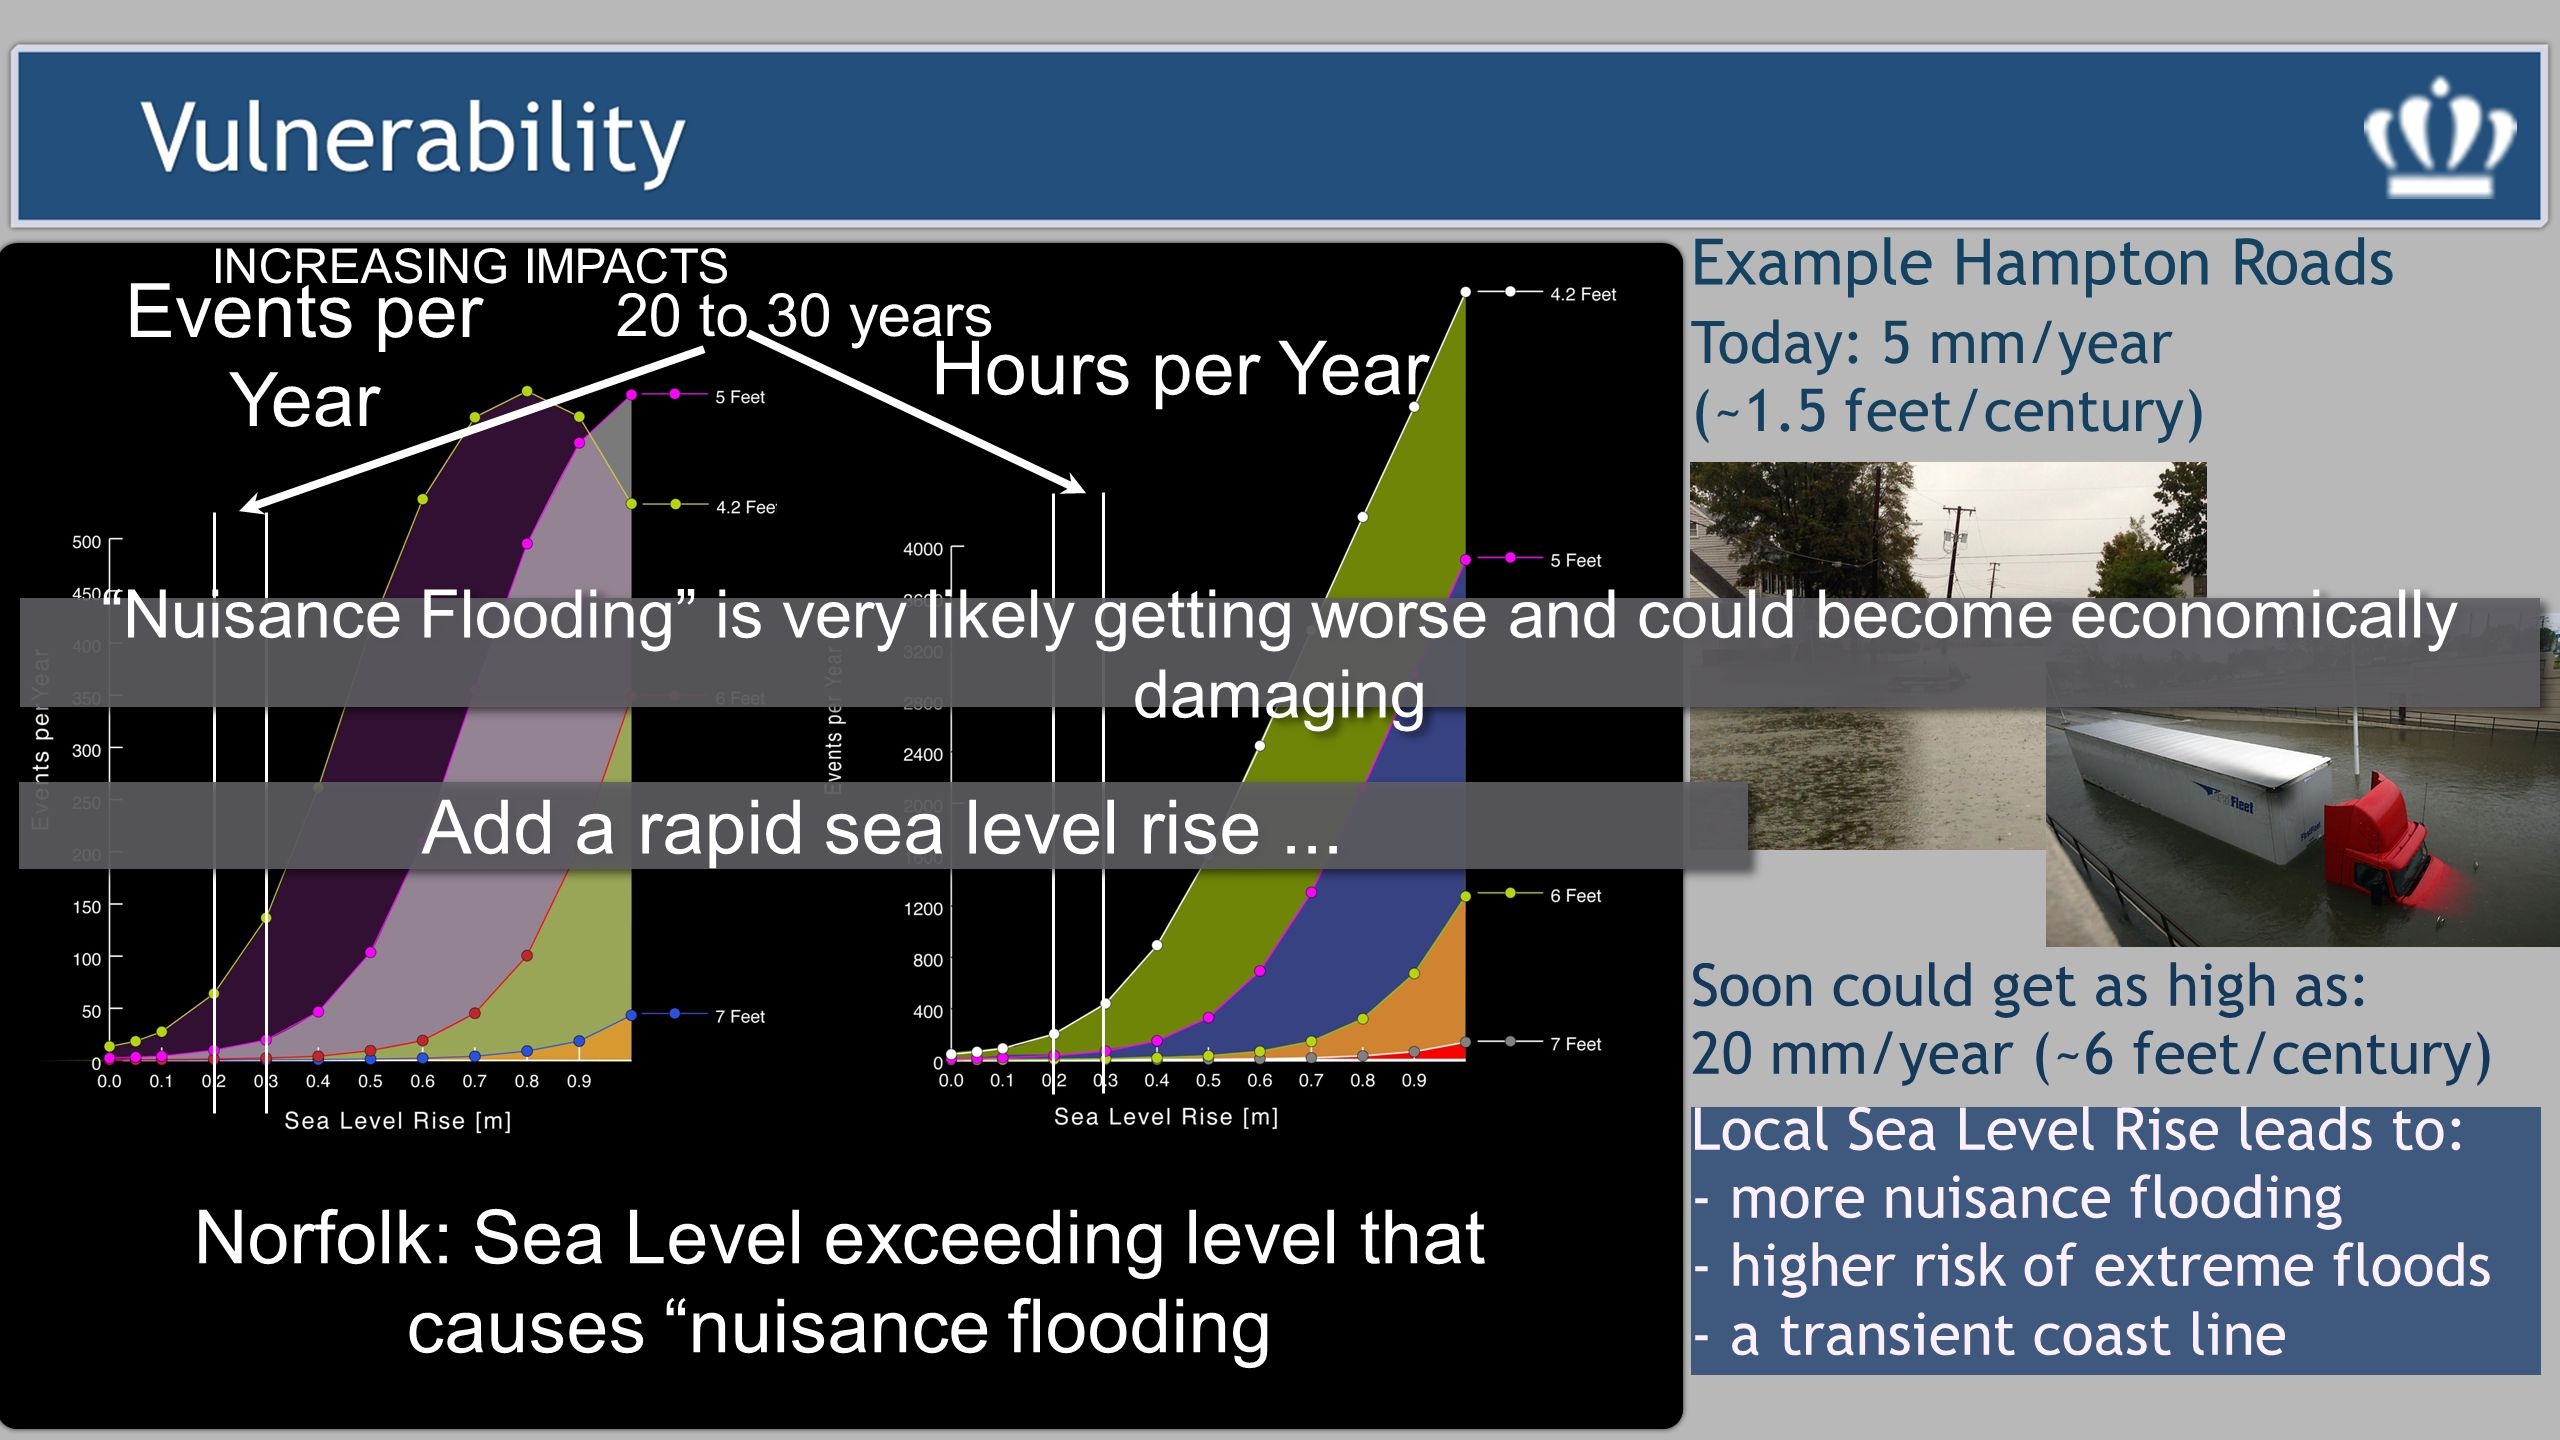 Example Hampton Roads Soon could get as high as: 20 mm/year (~6 feet/century) Today: 5 mm/year (~1.5 feet/century) Local Sea Level Rise leads to: - more nuisance flooding - higher risk of extreme floods - a transient coast line INCREASING IMPACTS 20 to 30 years Norfolk: Sea Level exceeding level that causes nuisance flooding Events per Year Hours per Year Nuisance Flooding is very likely getting worse and could become economically damaging Add a rapid sea level rise...